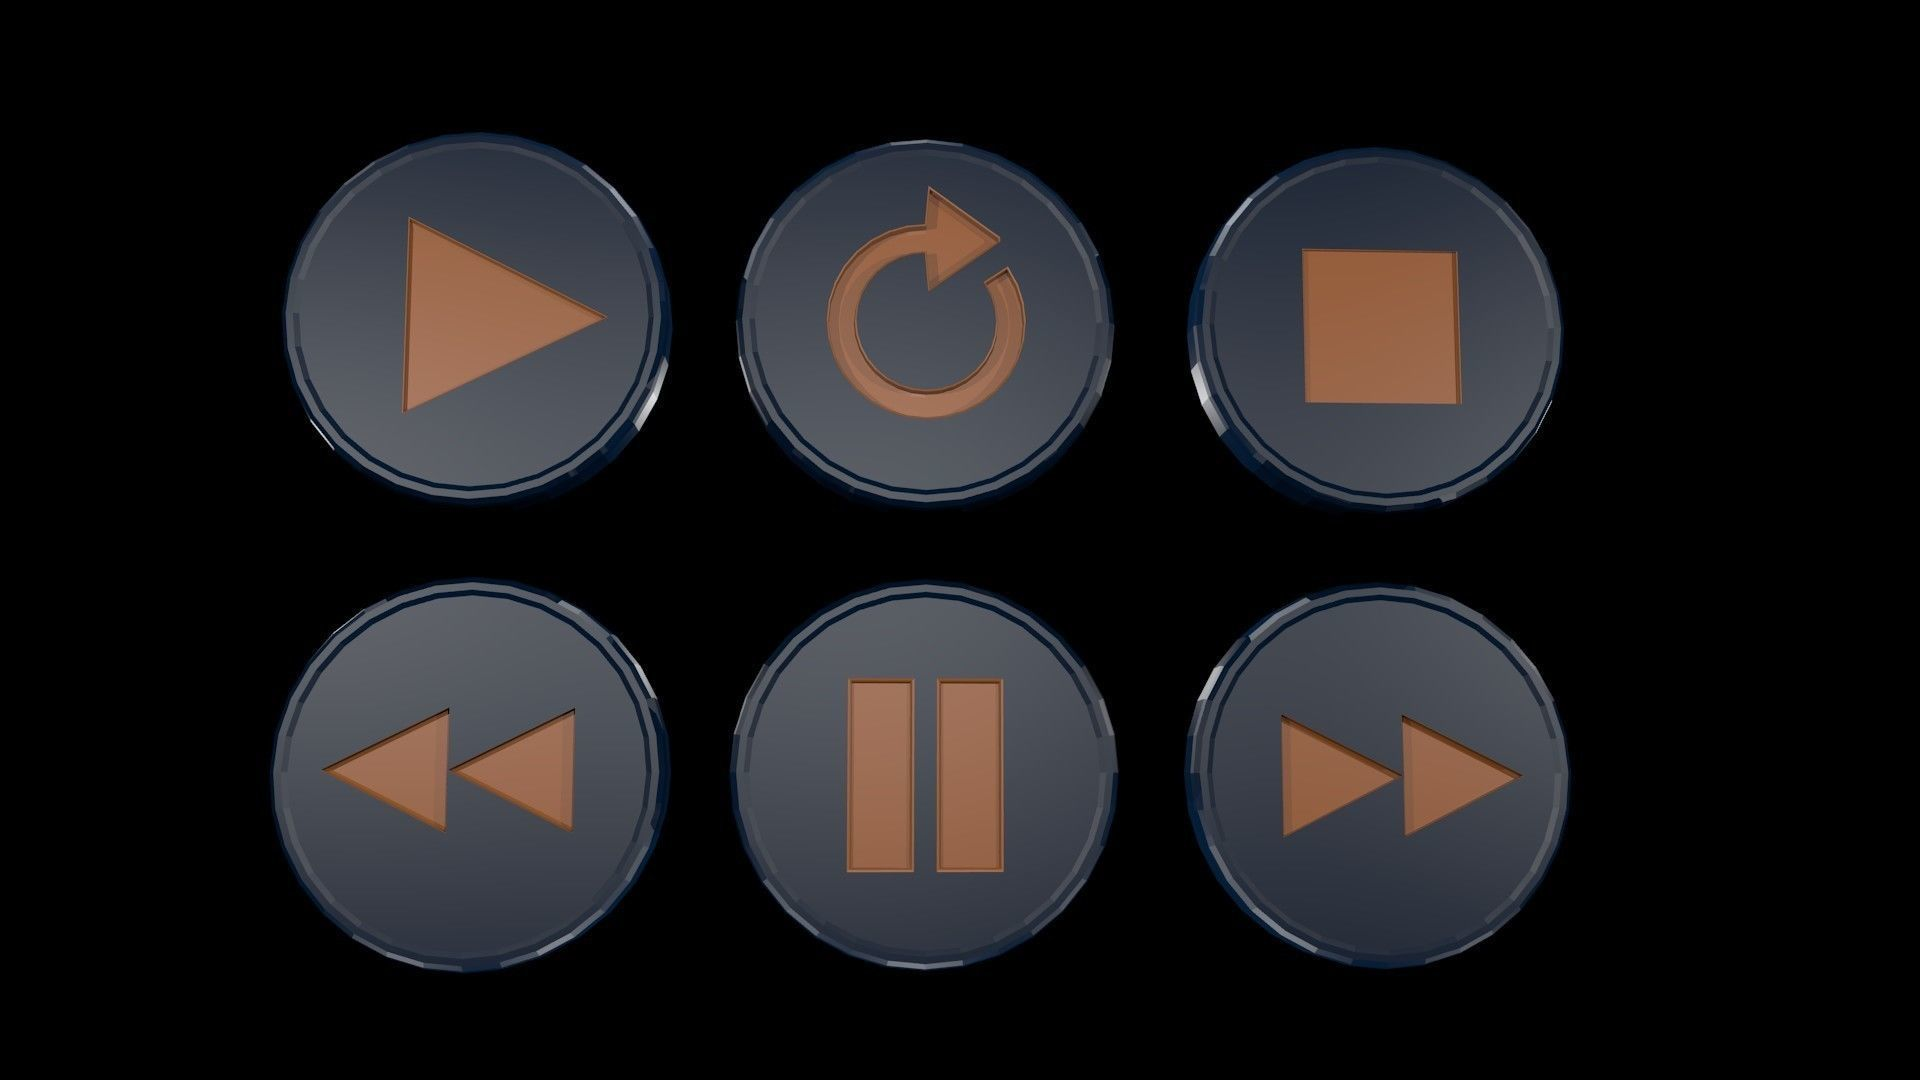 Low poly player buttons